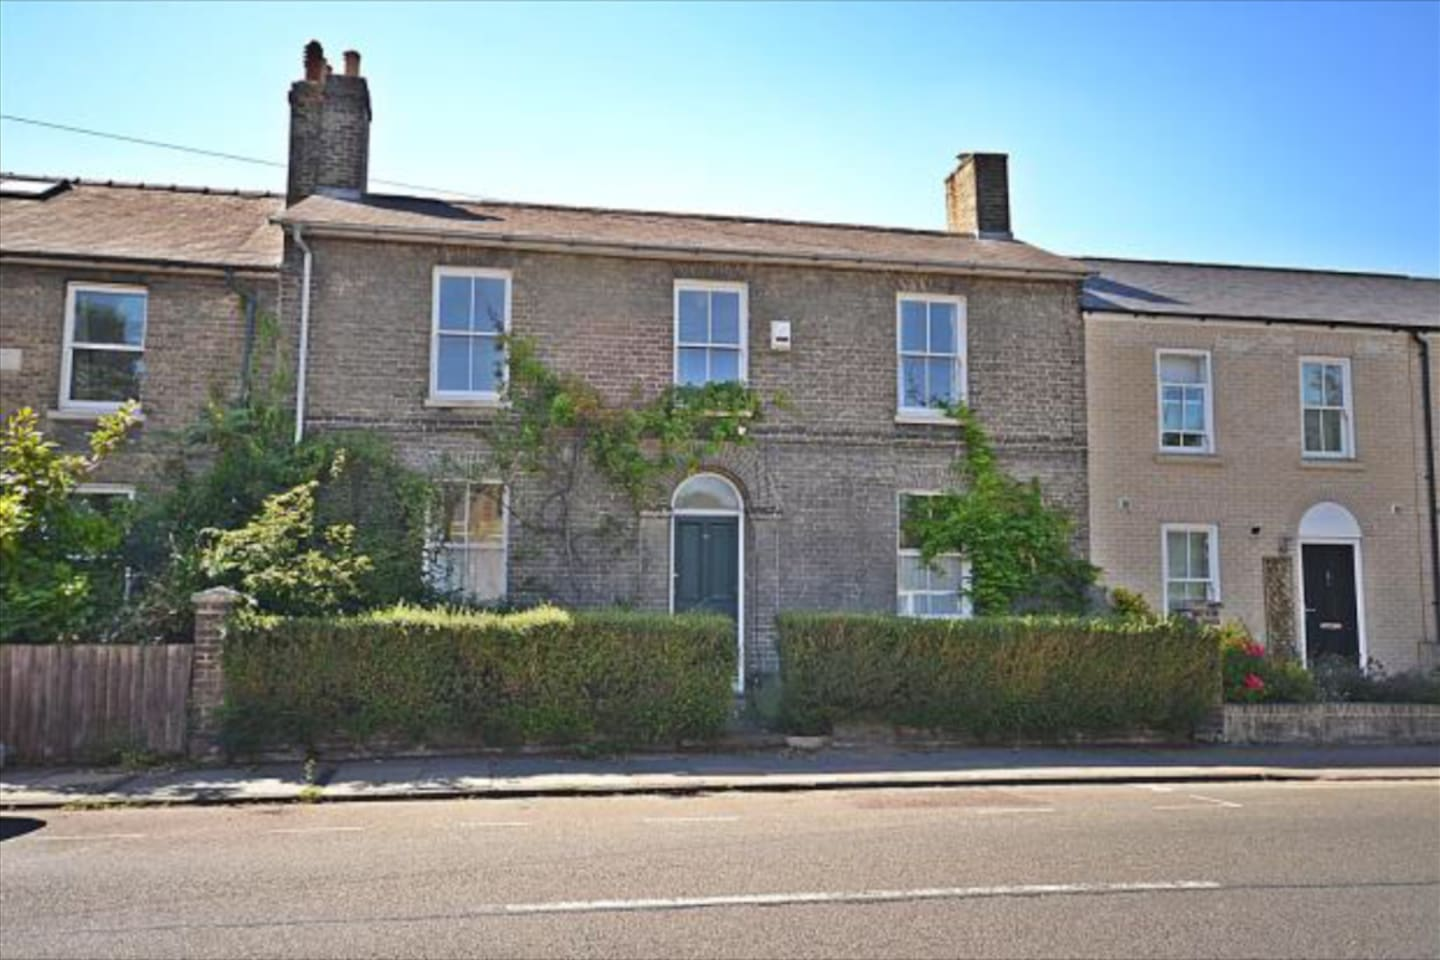 Beautiful double-fronted house built in 1870s with lots of character